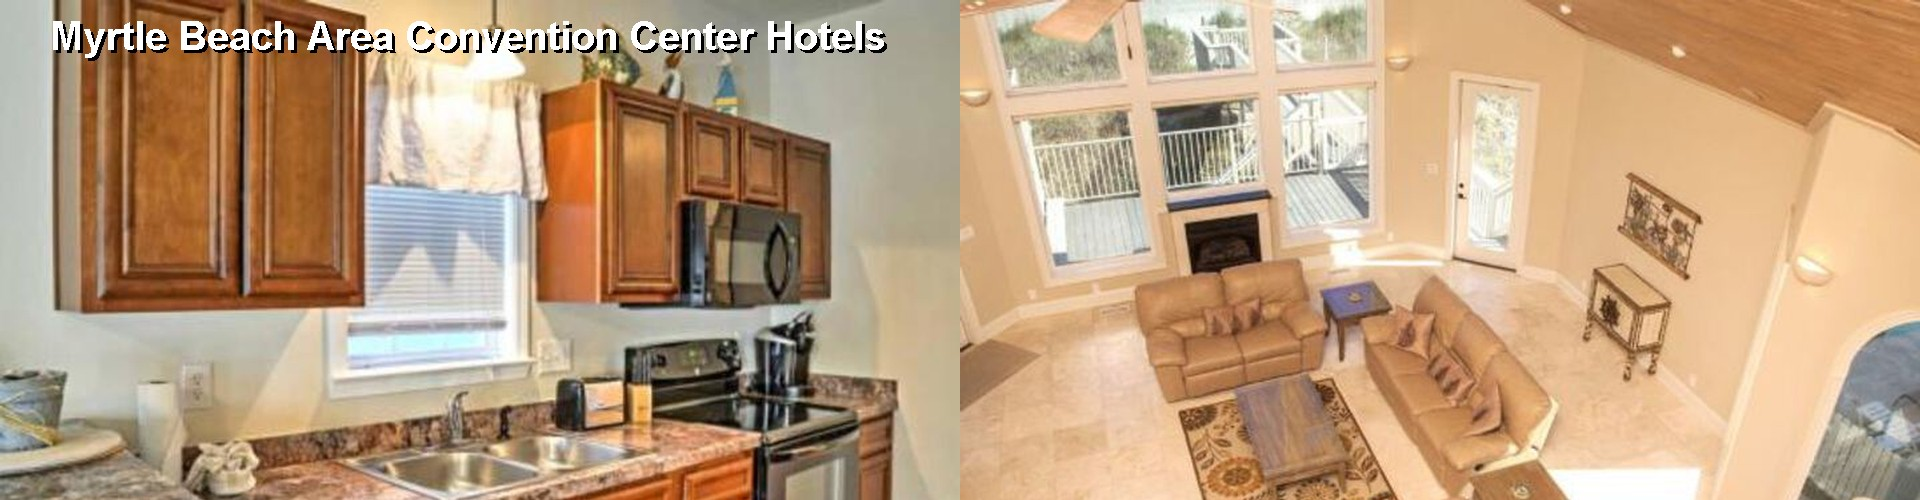 5 Best Hotels near Myrtle Beach Area Convention Center